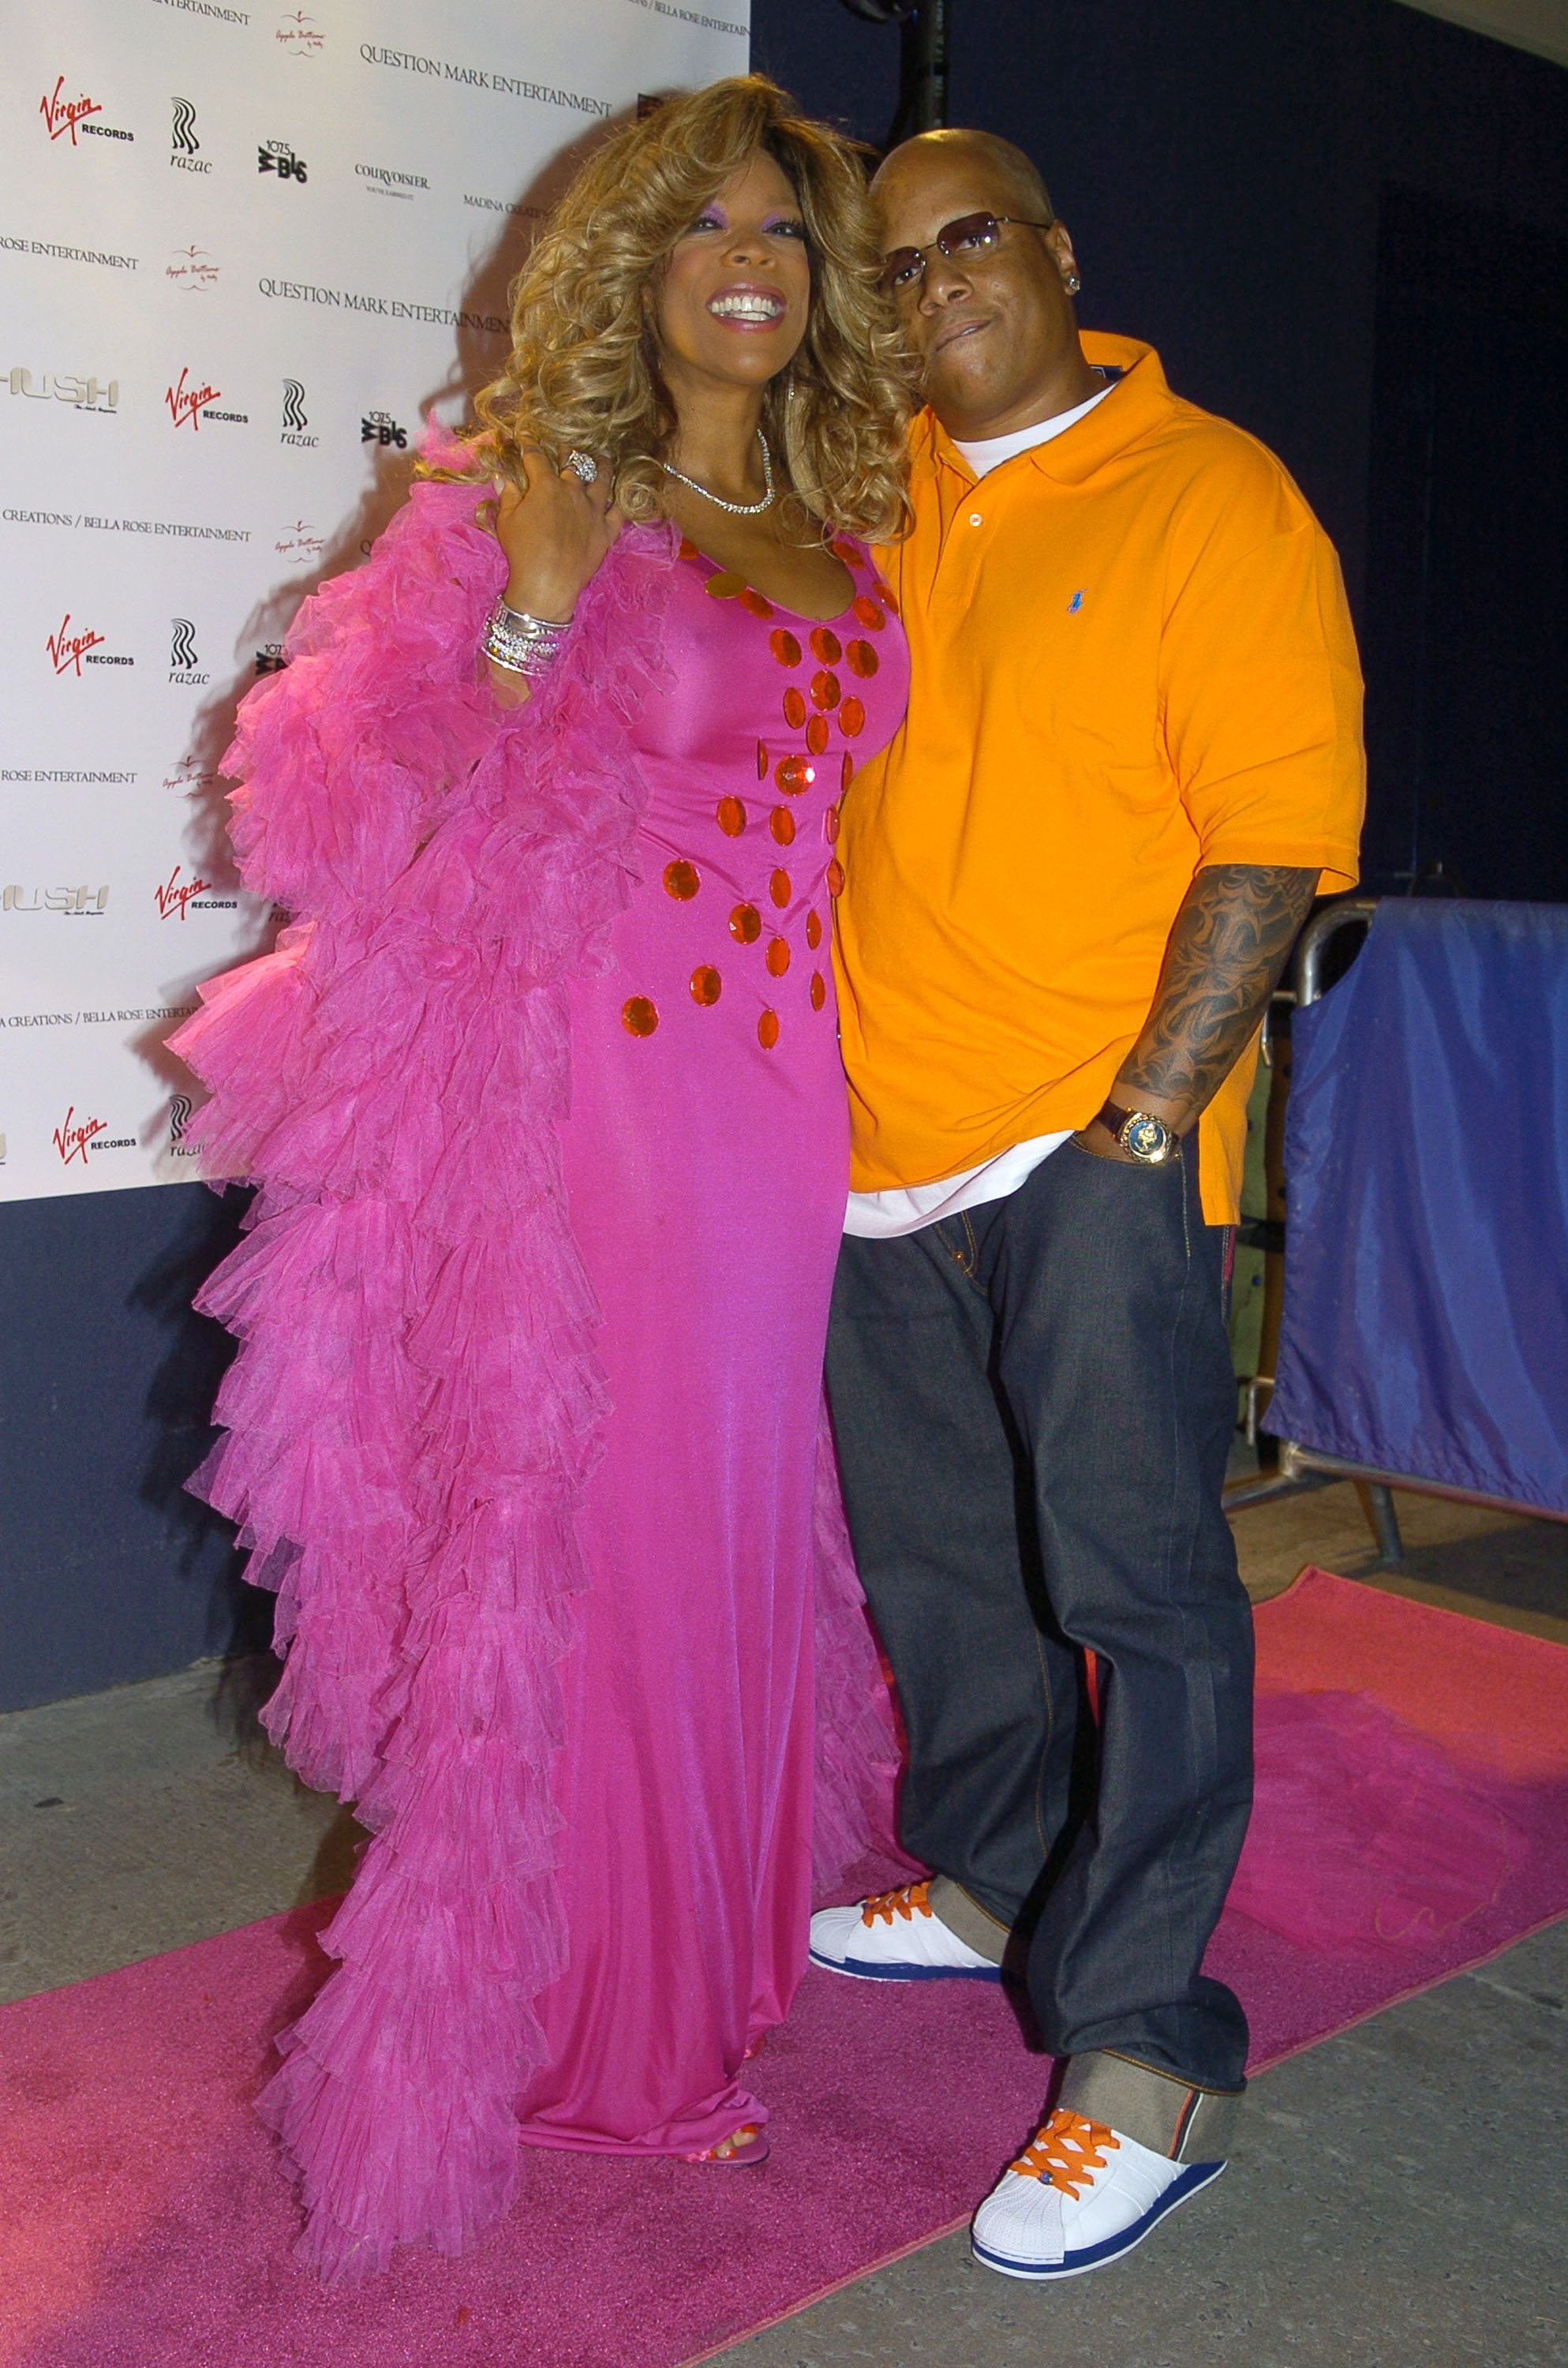 Wendy Williams & Kevin Hunter at the release party for 'Wendy Williams Brings The Heat, Vol. 1' in New York City on Jun. 22, 2005. | Source: Getty Images